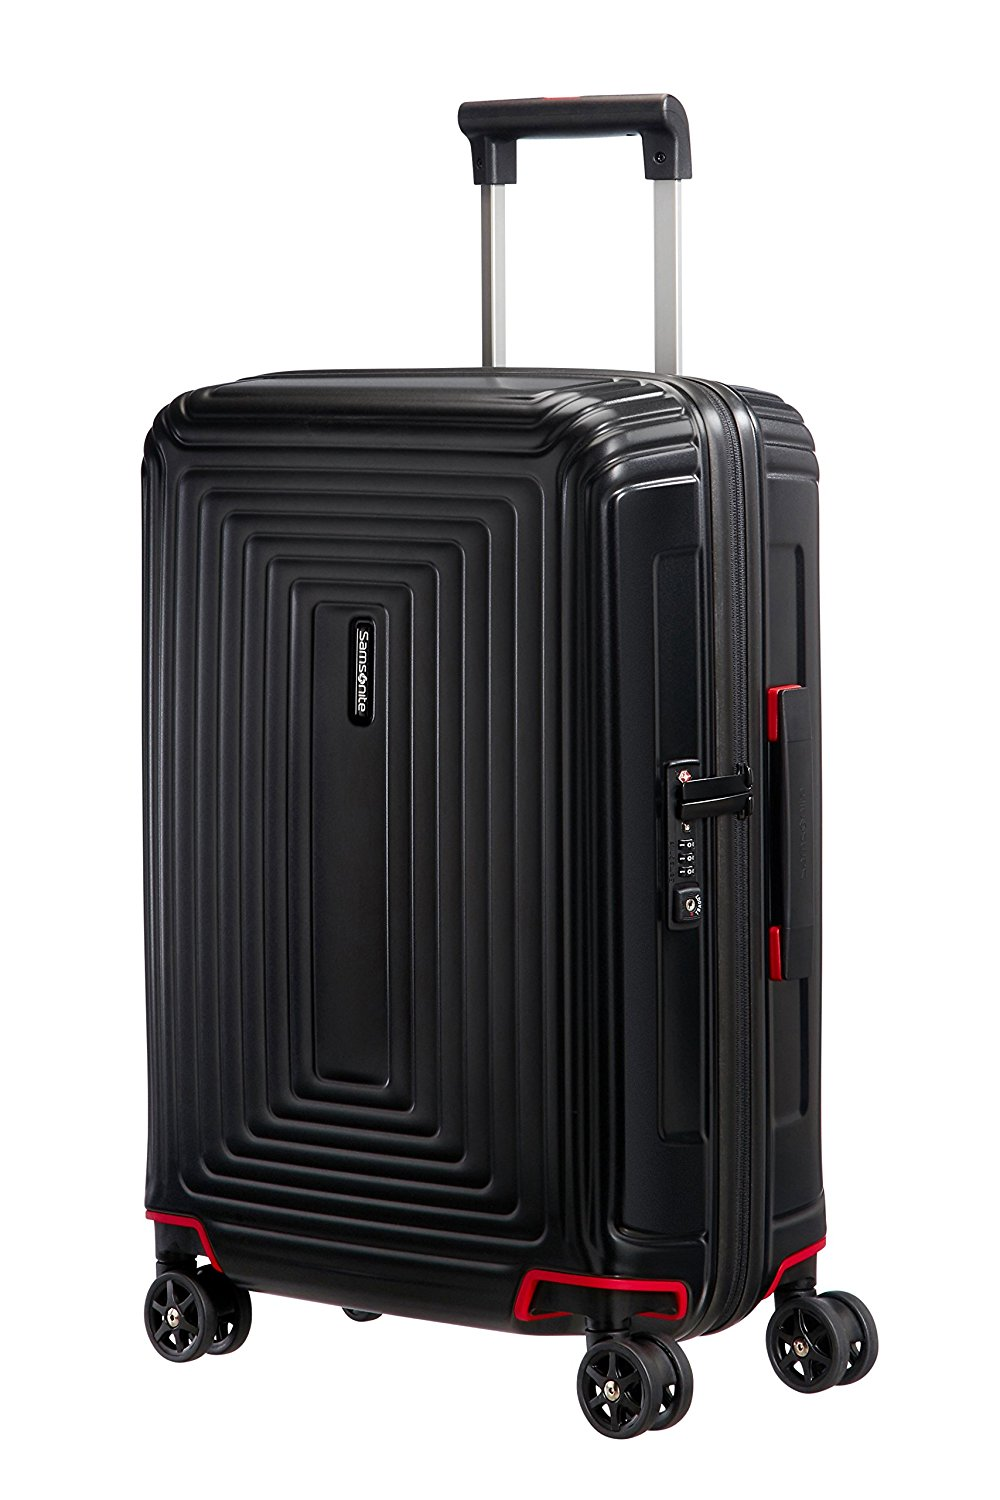 Samsonite Neopulse Spinner, S (55cm-38L), MATTE BLACK